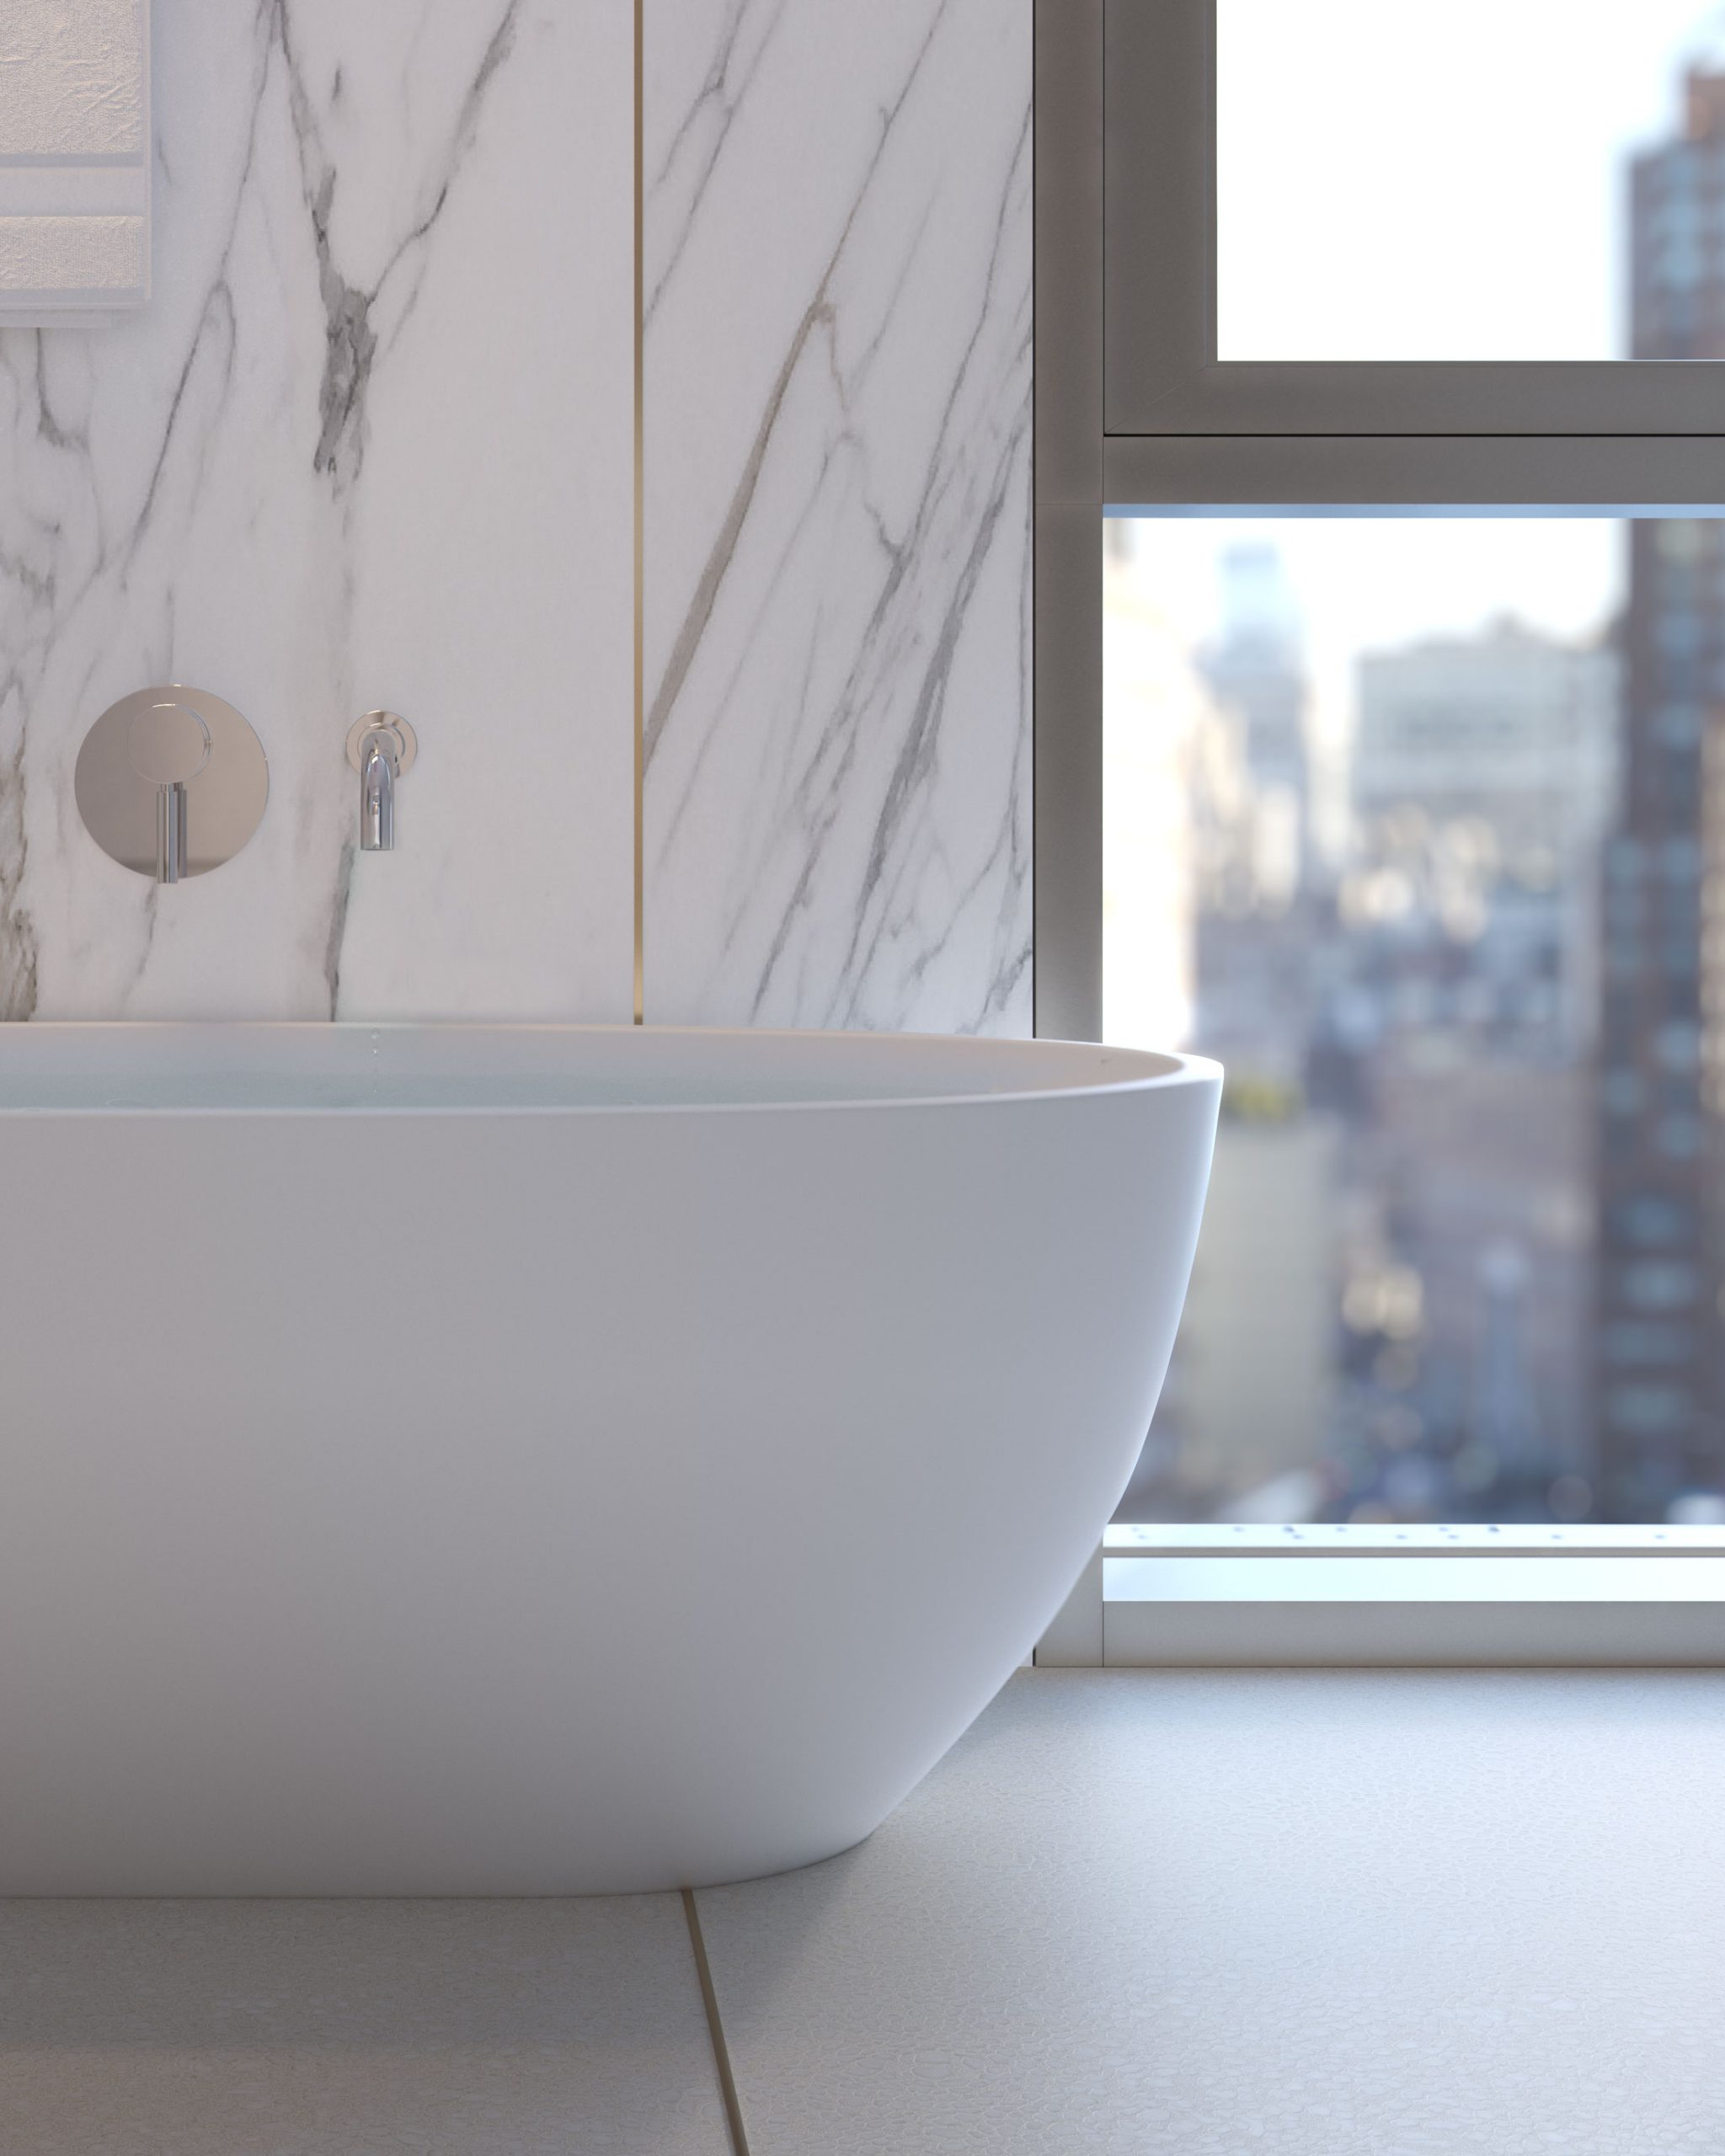 Architectural Rendering of a bathroom detail of the 80 East 10th Street project located in Greenwich Village in New York City